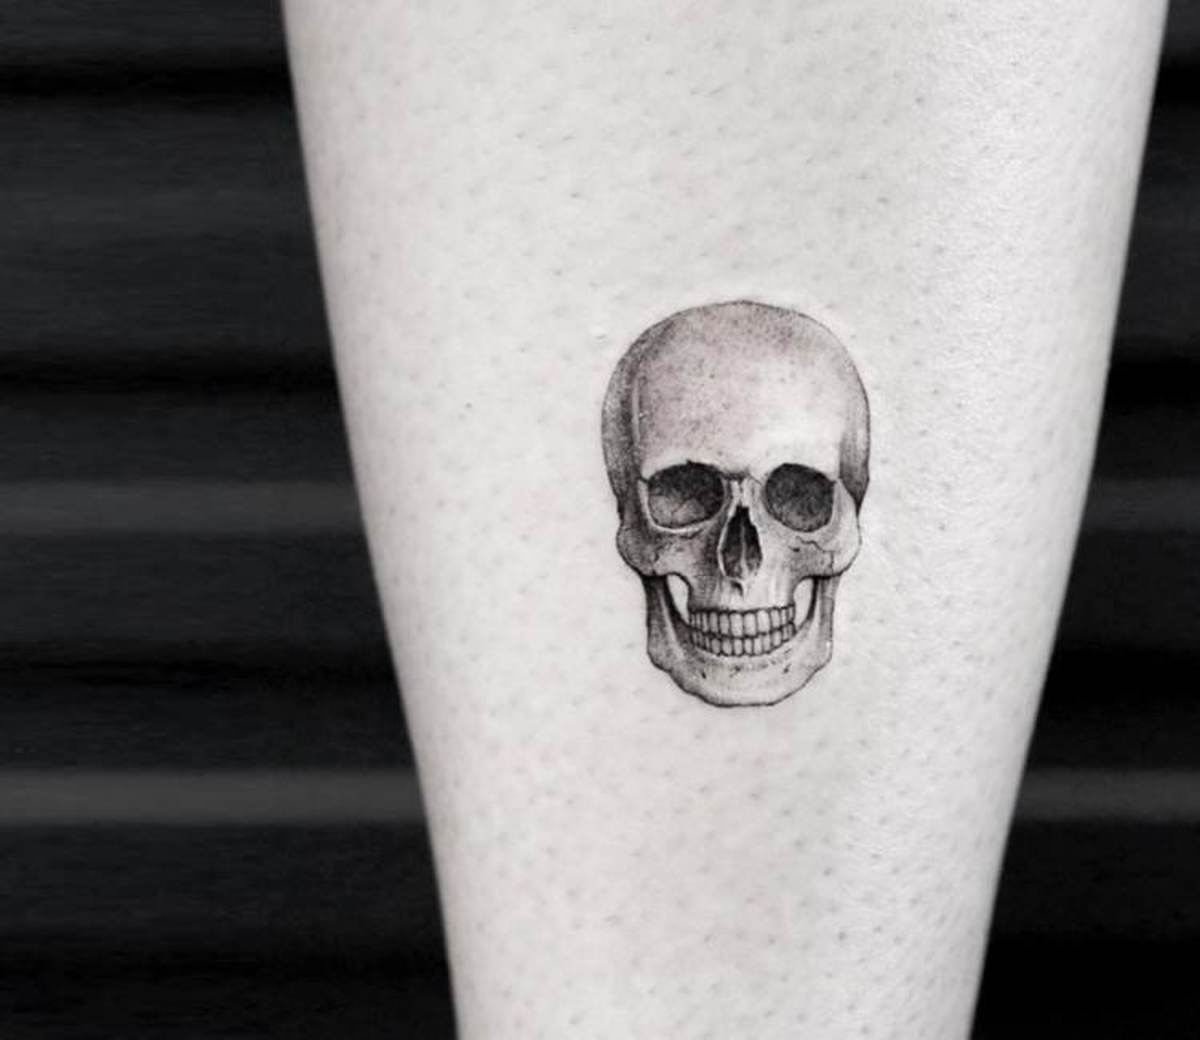 artist--mr-k-tattoo--small-skull-tattoo_17138125342